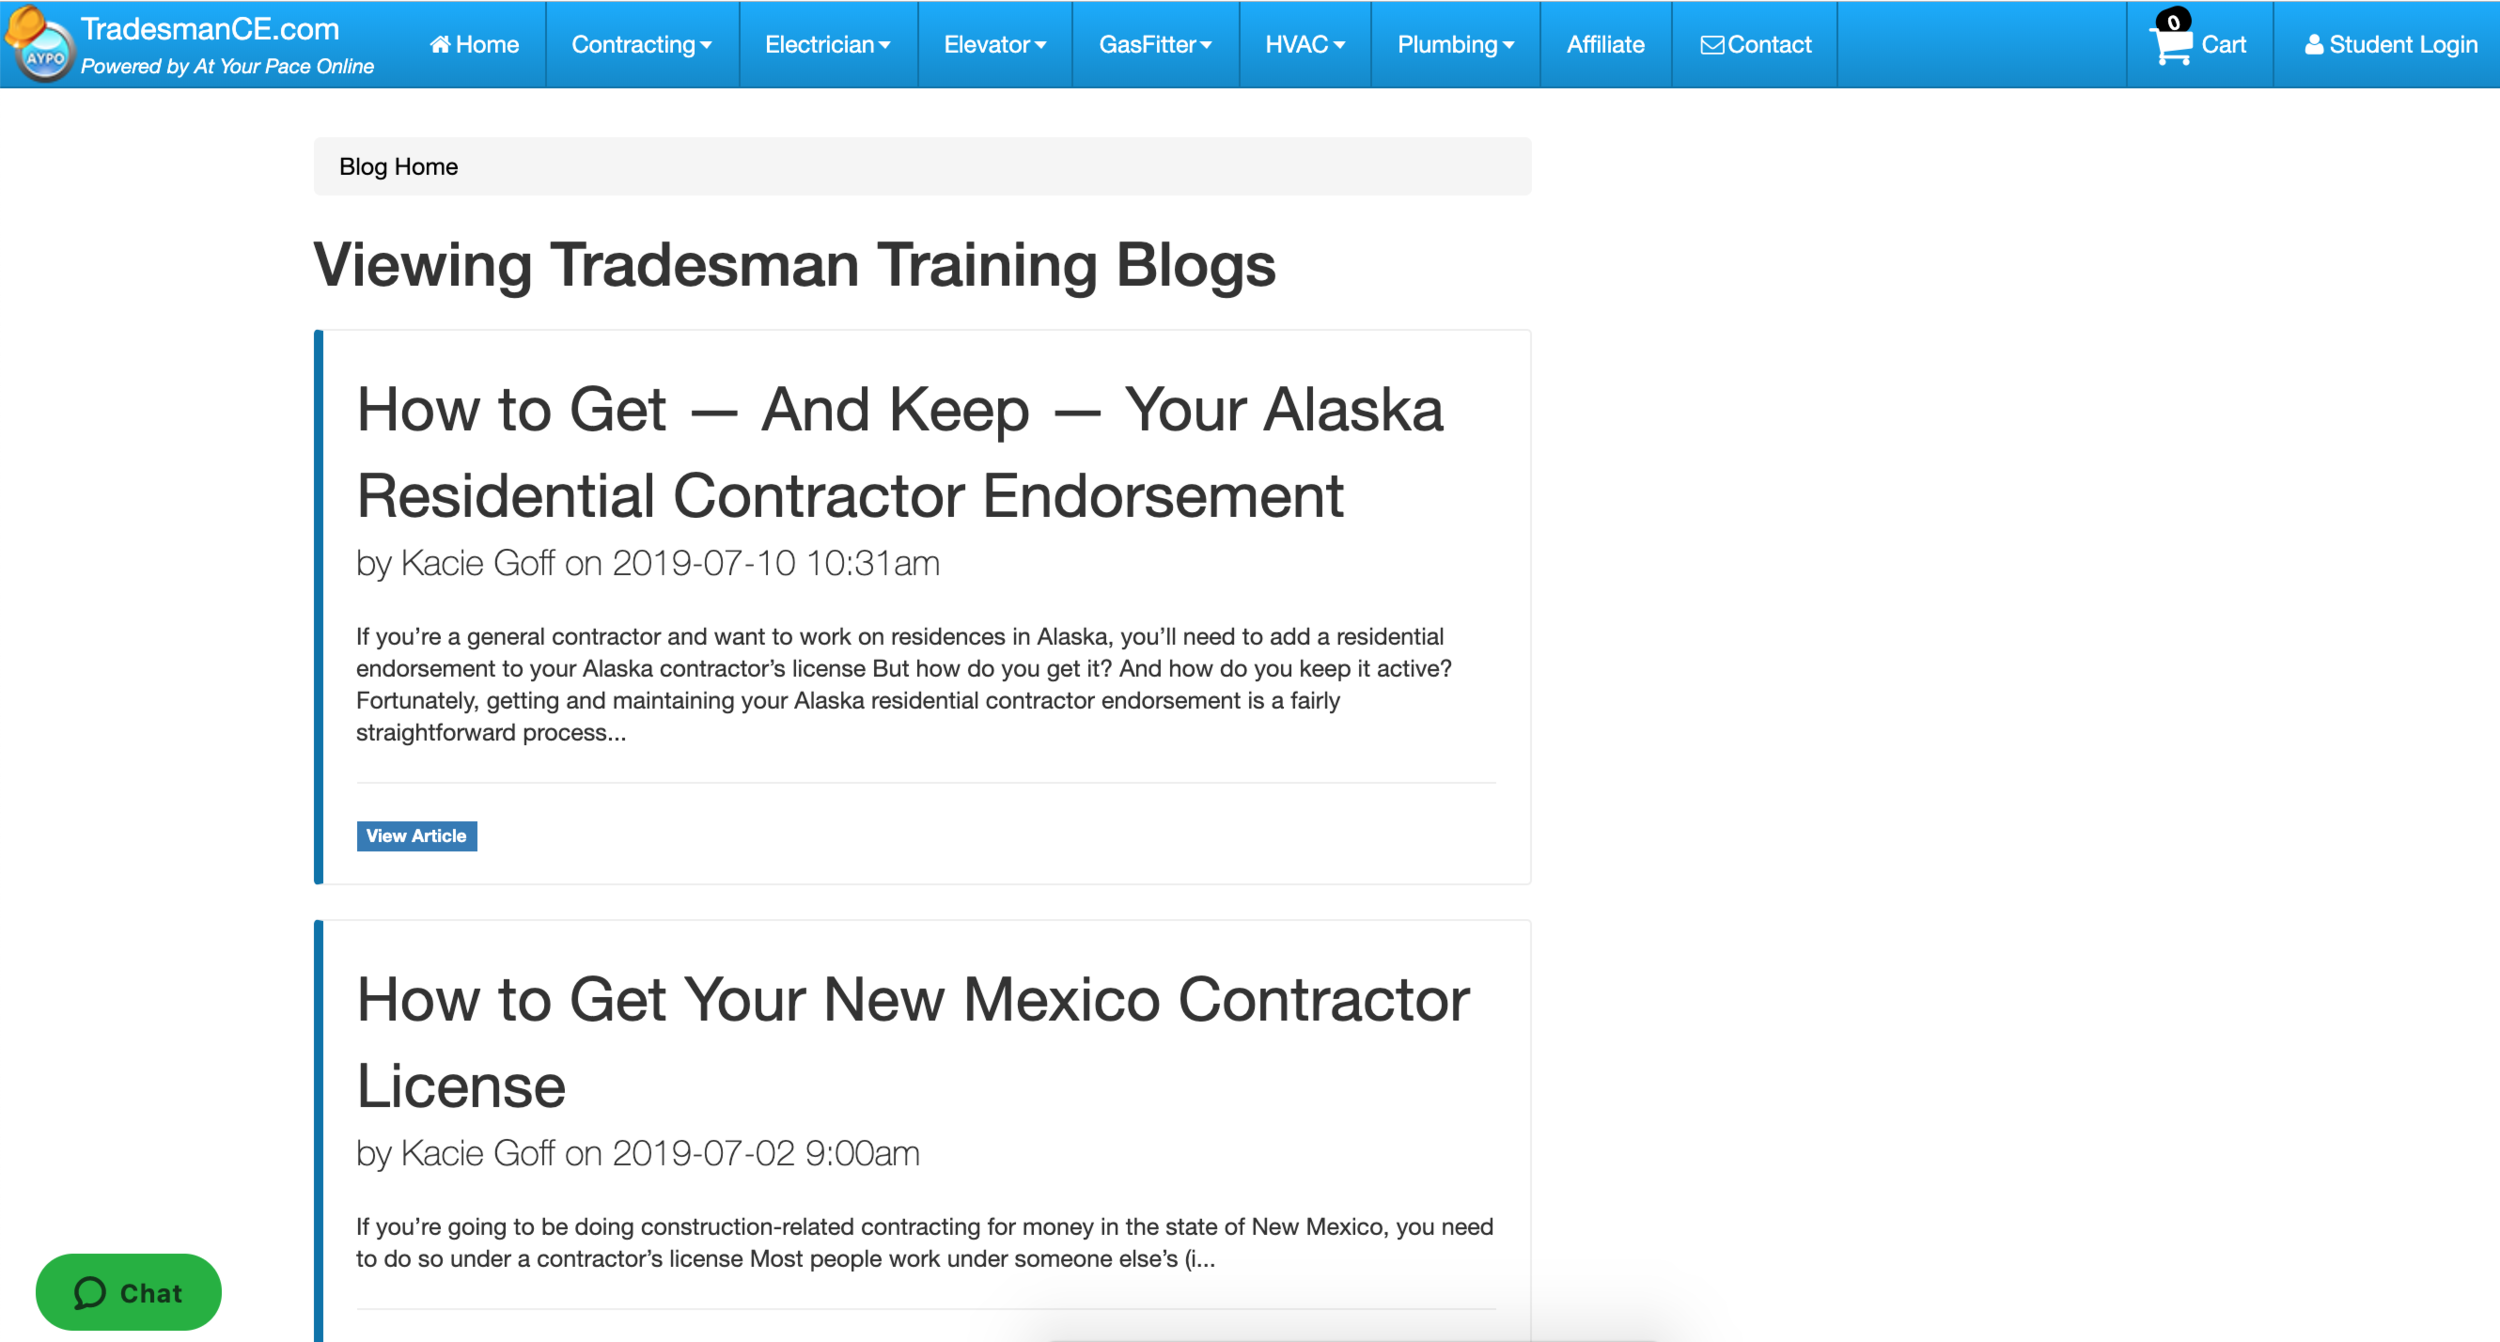 Blogs: At YOur Pace Online - At Your Pace Online offers a broad range of online continuing education opportunities. And to educate their clientele about those opportunities, I write blogs for them. You can find them at their Tradesman CE site, both in the blog section and their Career Central resource, where I created all of the content.